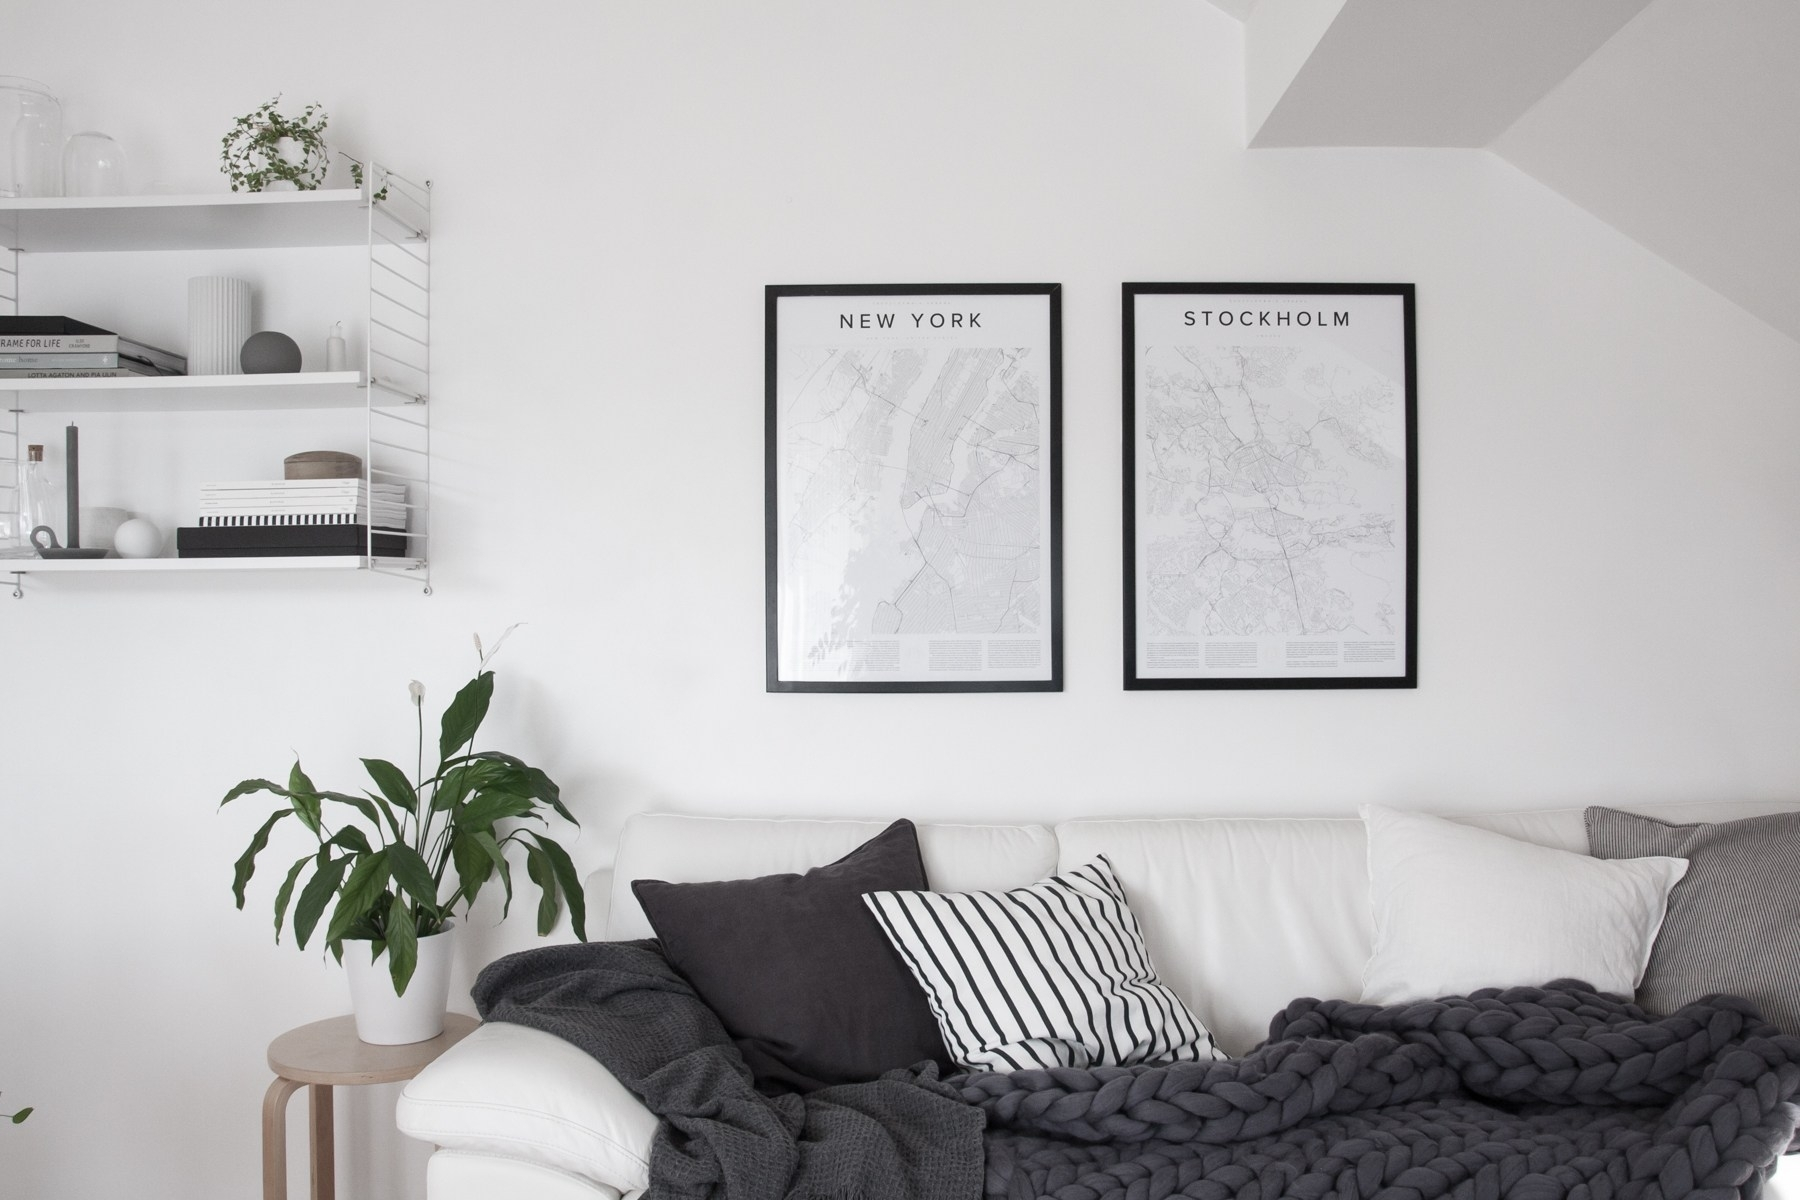 Top 10 Tips For Adding Scandinavian Style To Your Home | Happy Within Newest Grey And White Wall Accents (View 13 of 15)